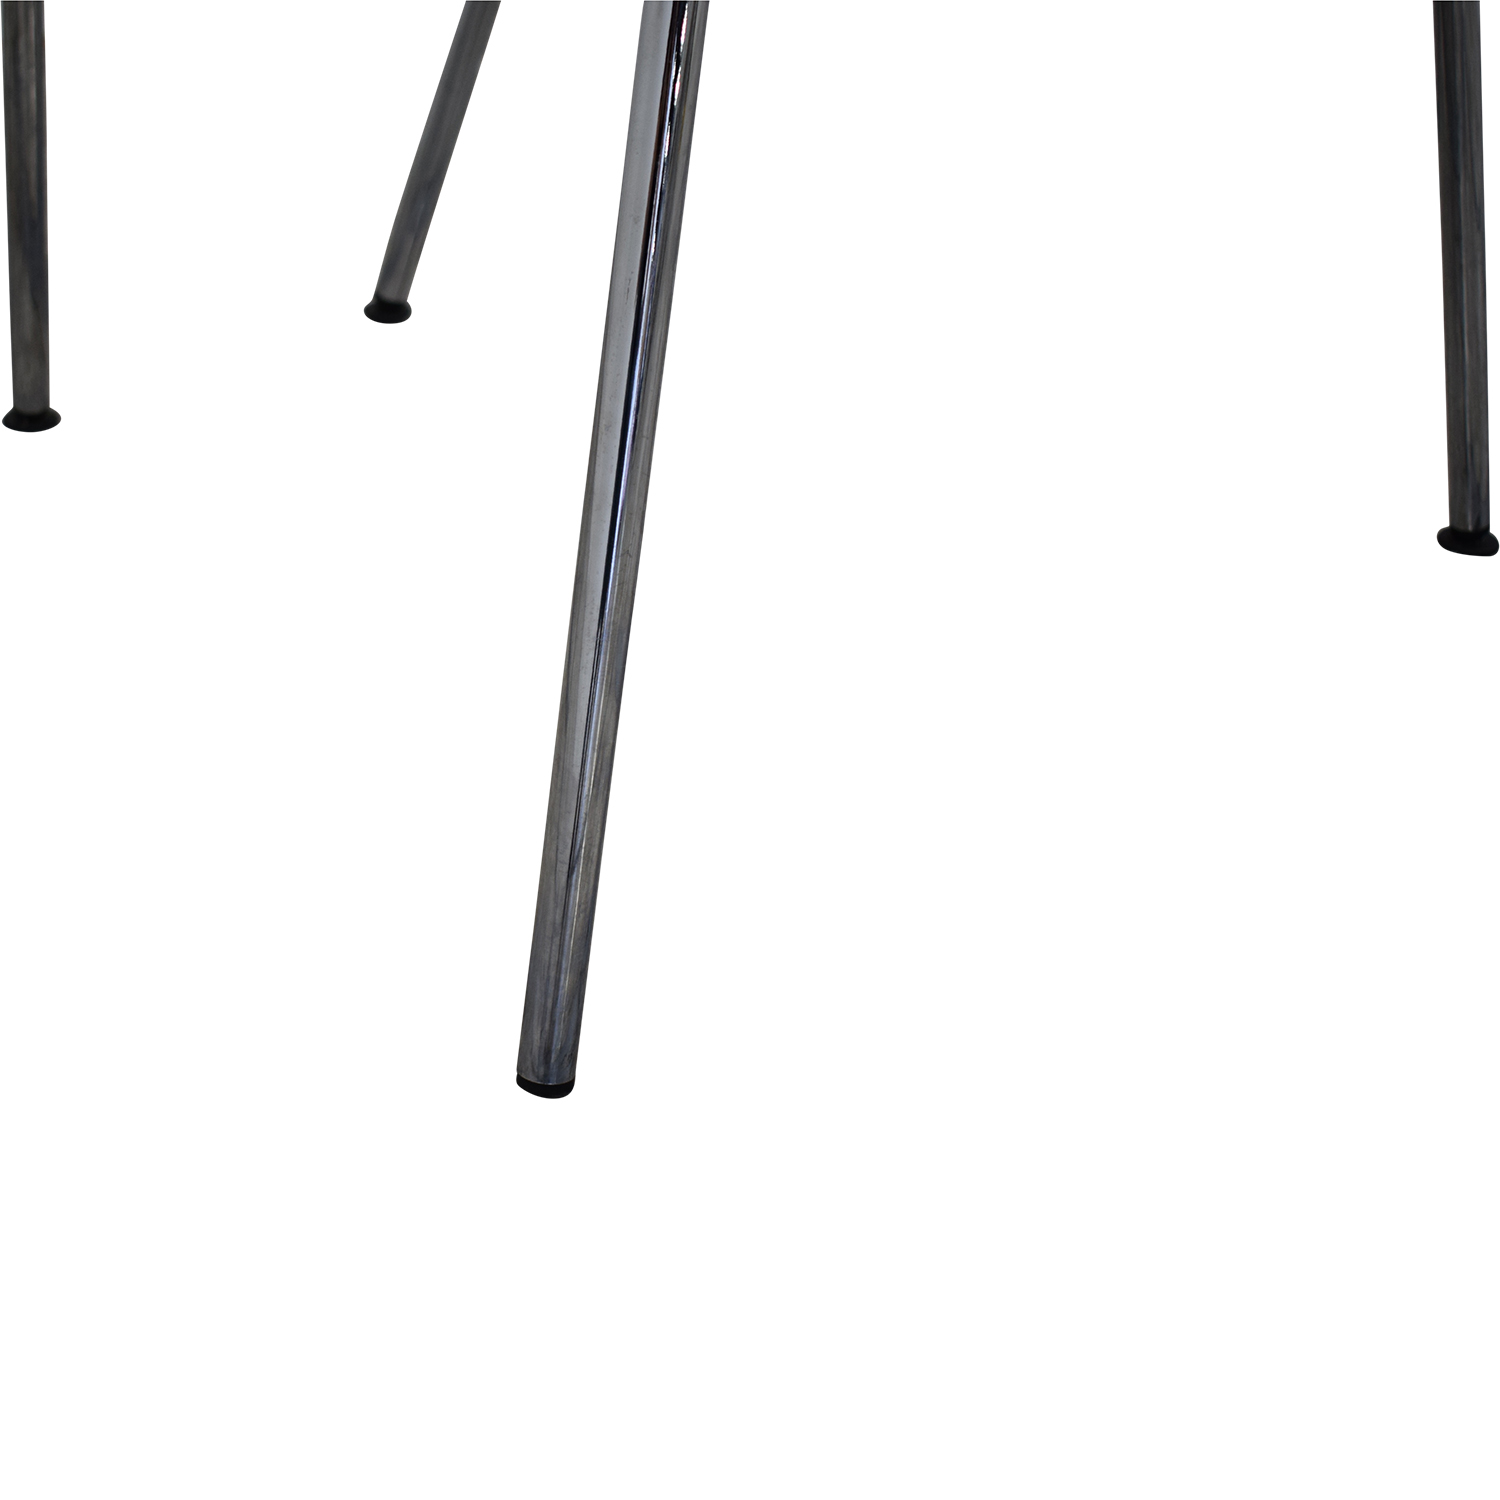 shop Vitra Vitra Ron Arad T. Vac Chair online